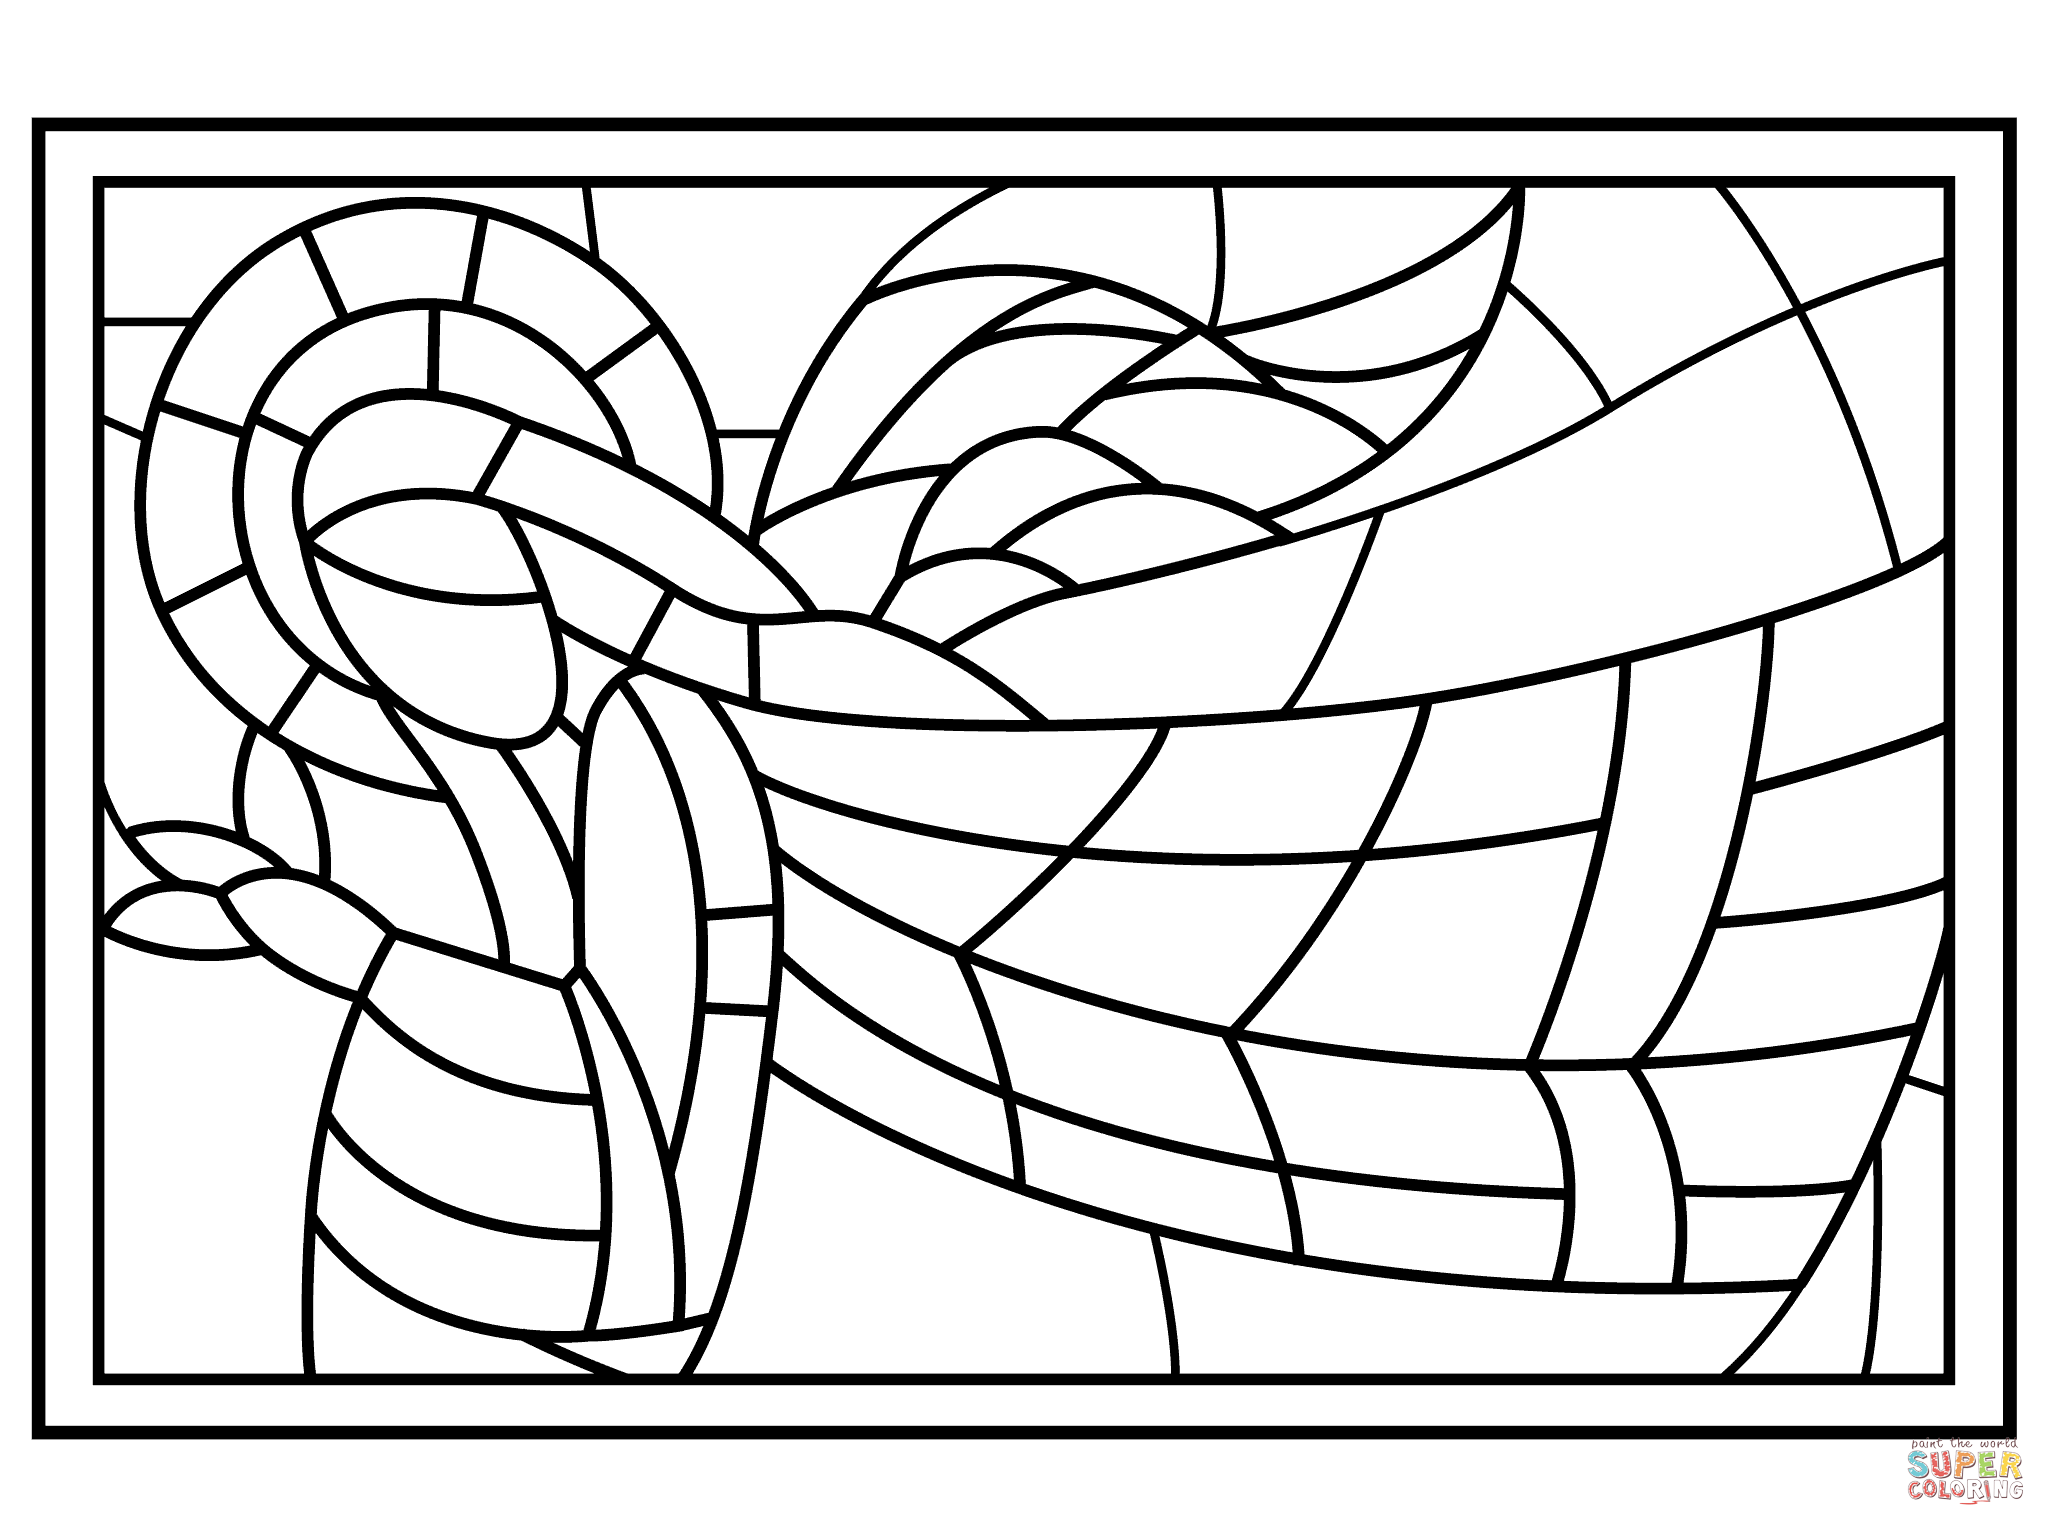 Stained glass ornament to color black and white clipart.